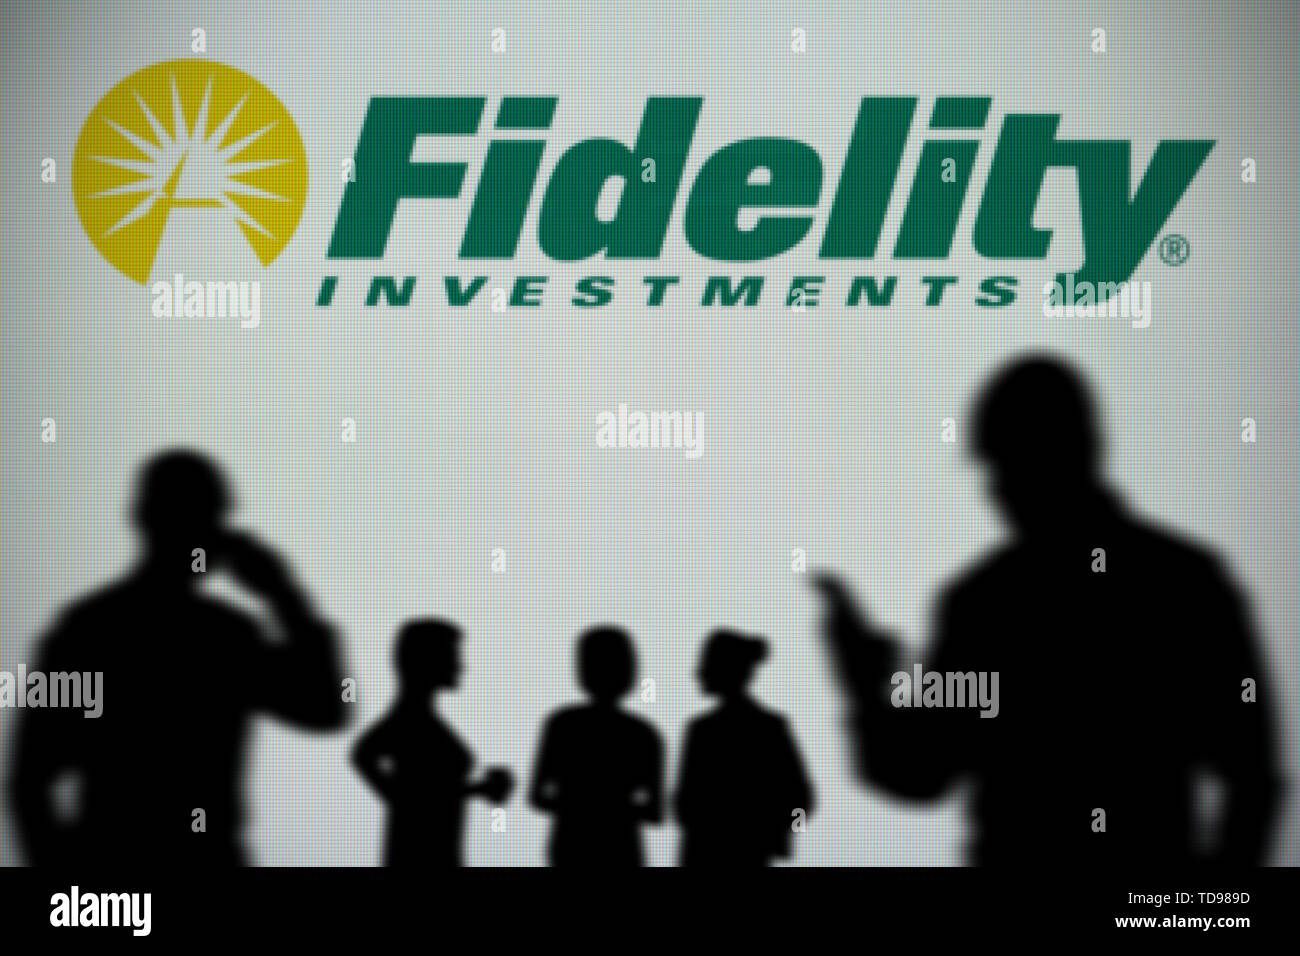 The Fidelity Investments logo is seen on an LED screen in the background while a silhouetted person uses a smartphone (Editorial use only) - Stock Image